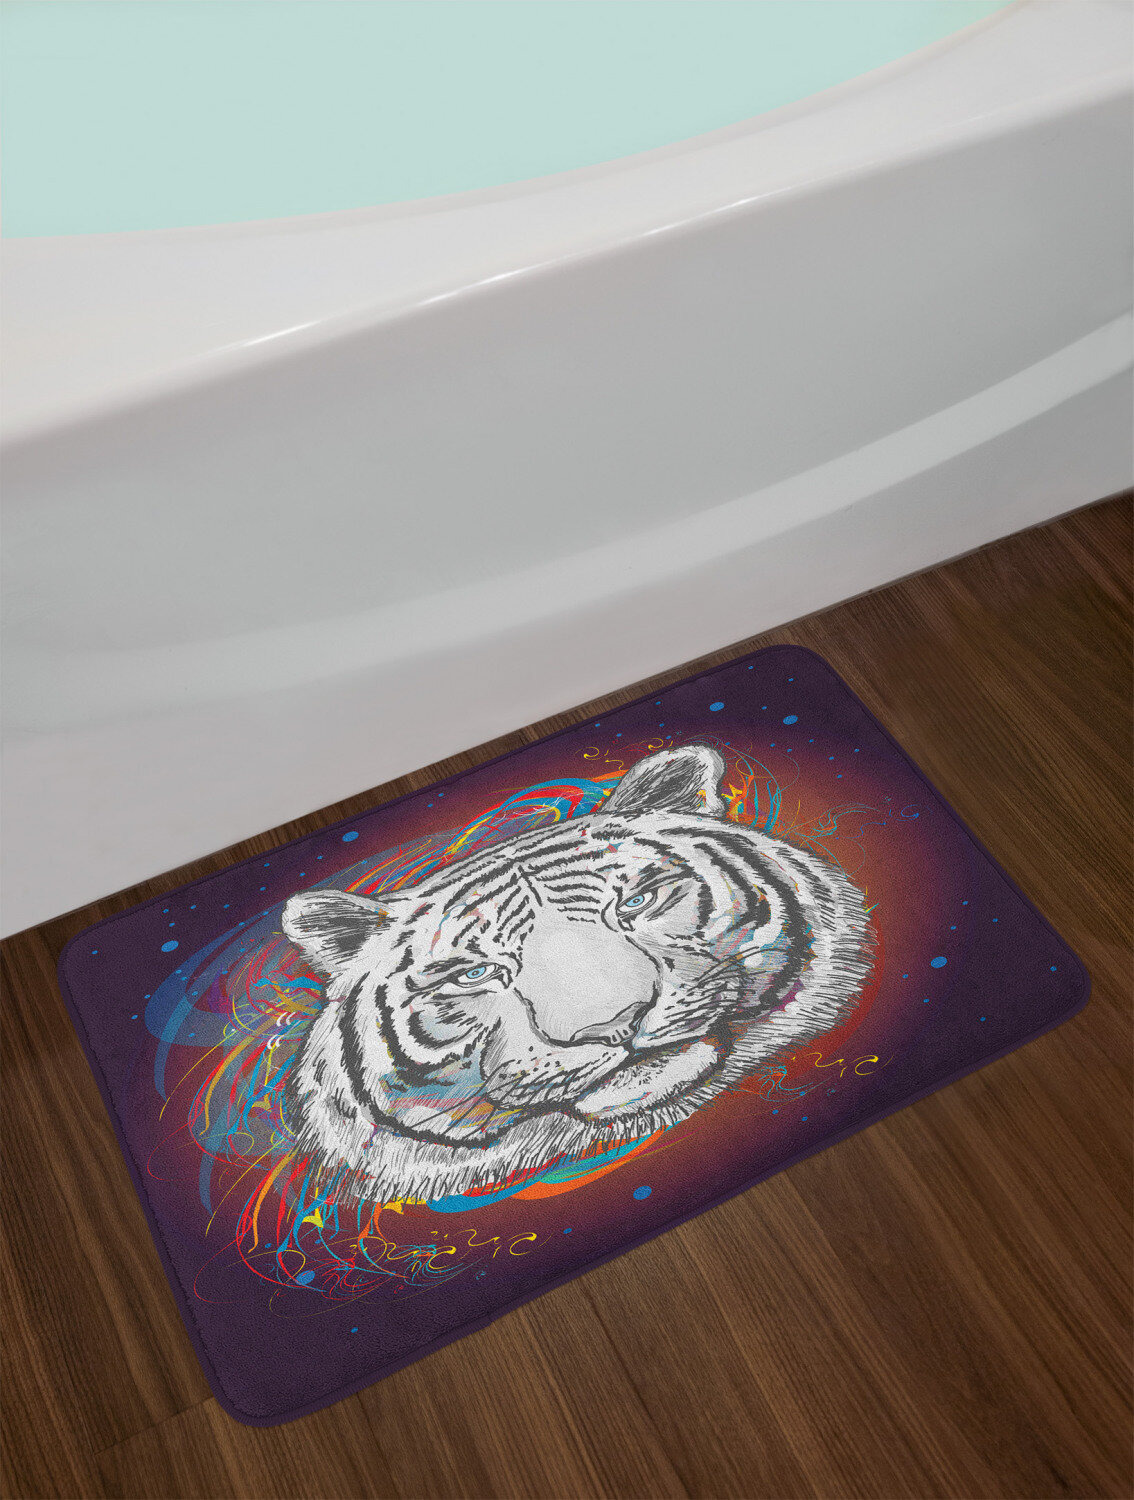 east urban home ambesonne animal bath mat wildlife theme modern image of a white tiger lion head from outer space plush bathroom decor mat with non slip backing 295 x 175 brown white and black ebmk2148